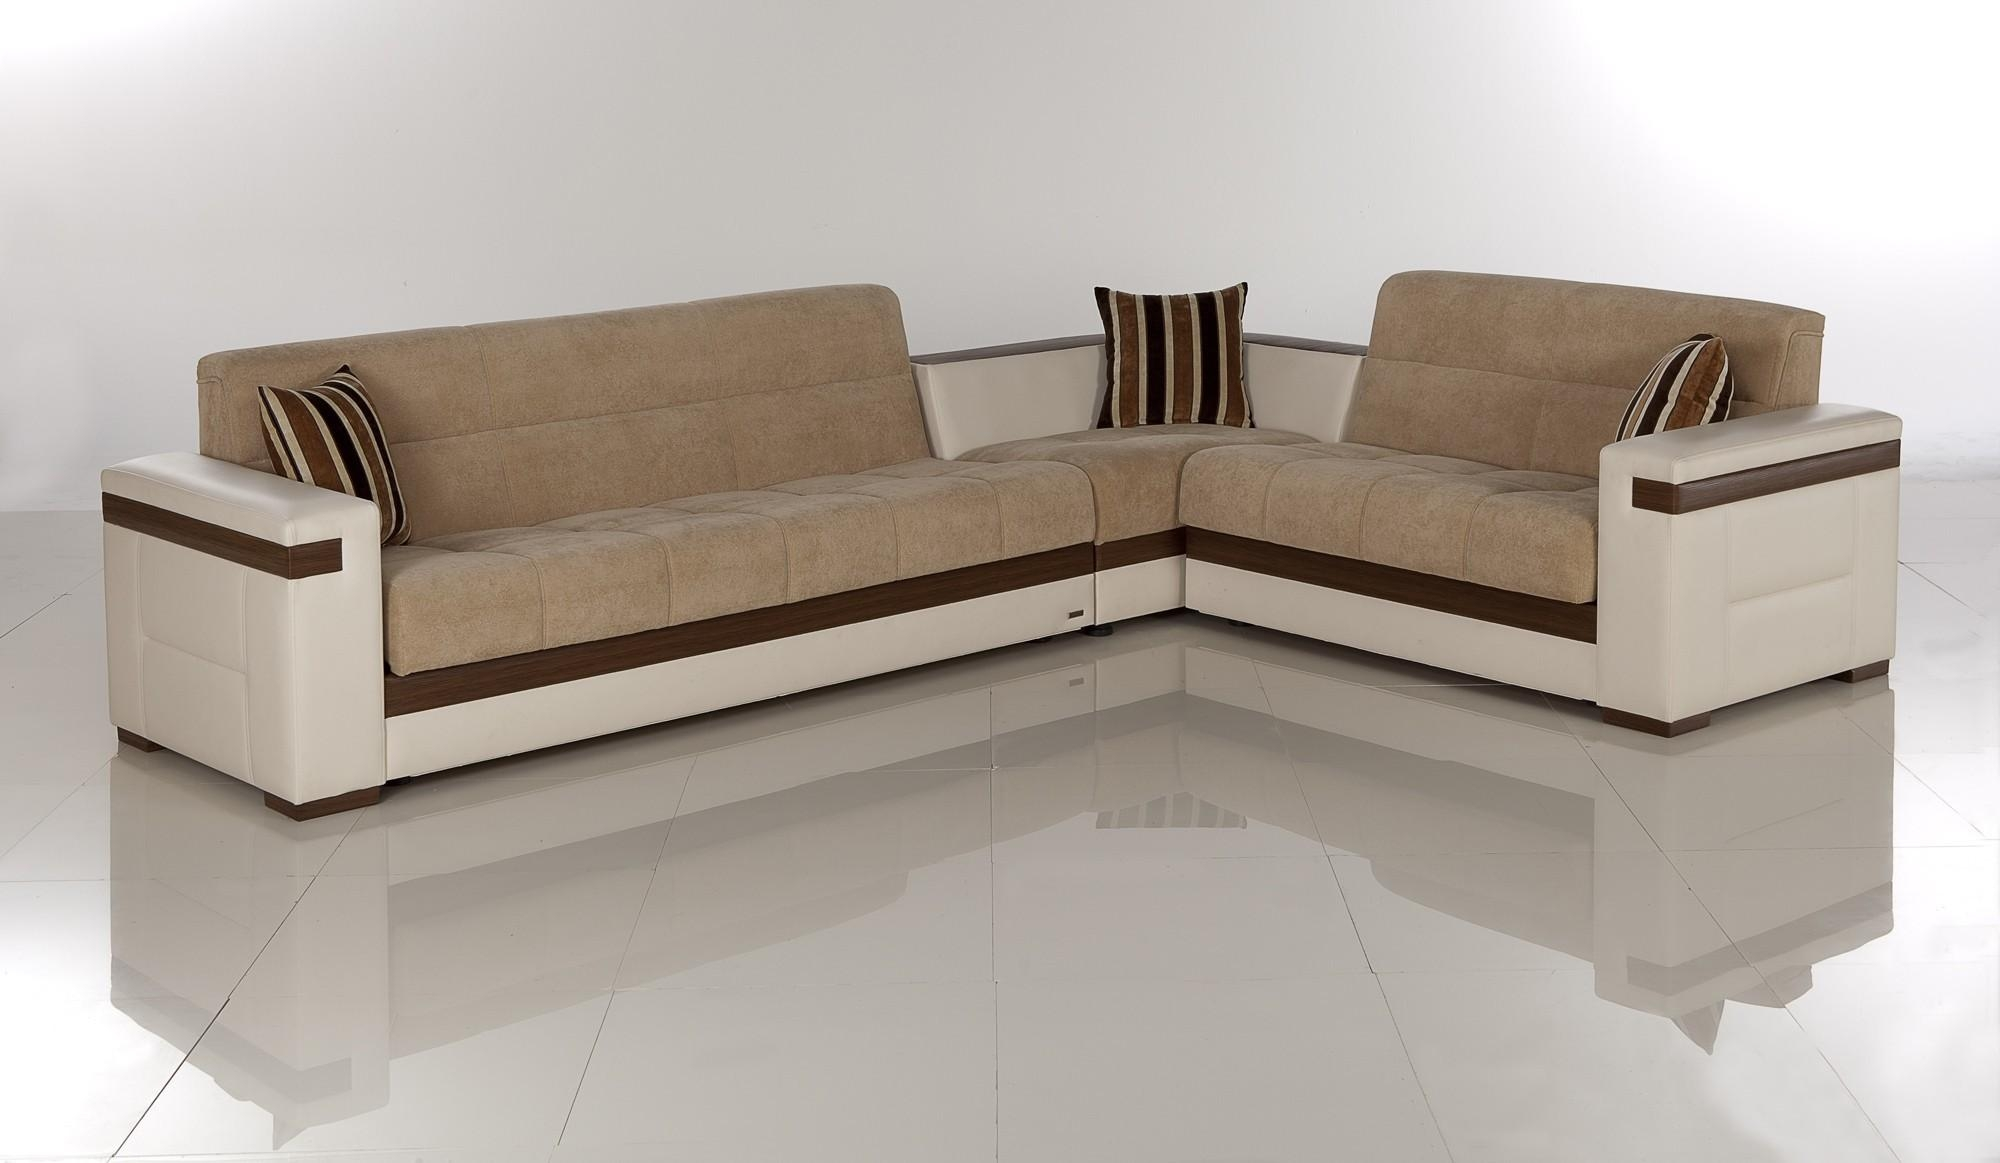 Trend Sectionals With Sofa Beds 78 With Additional Leather With Leather Sectional Sofas Toronto (View 18 of 20)